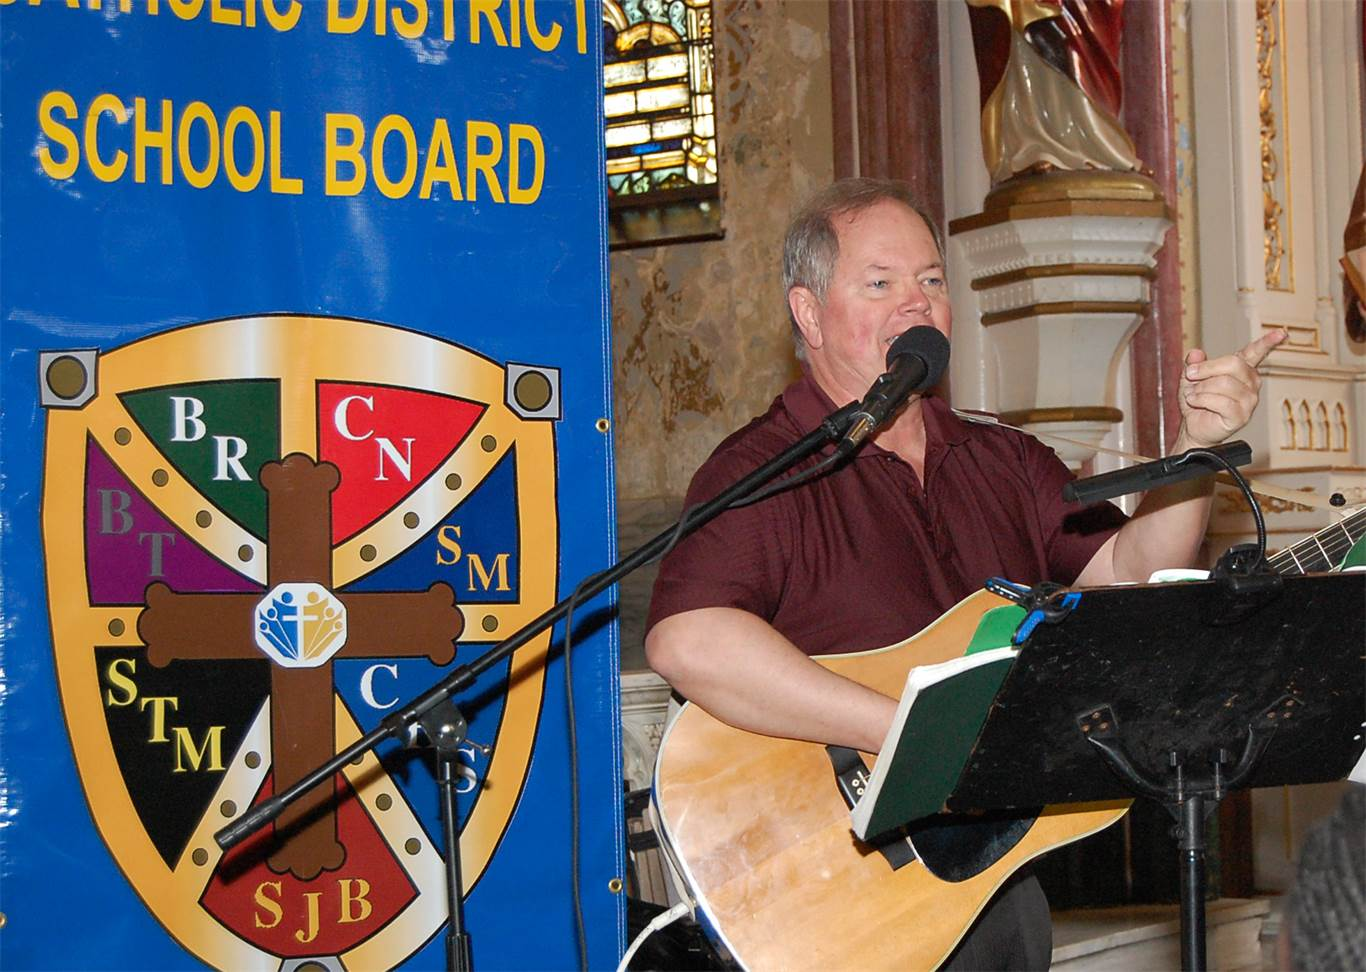 Music was provided by Joe Allain.